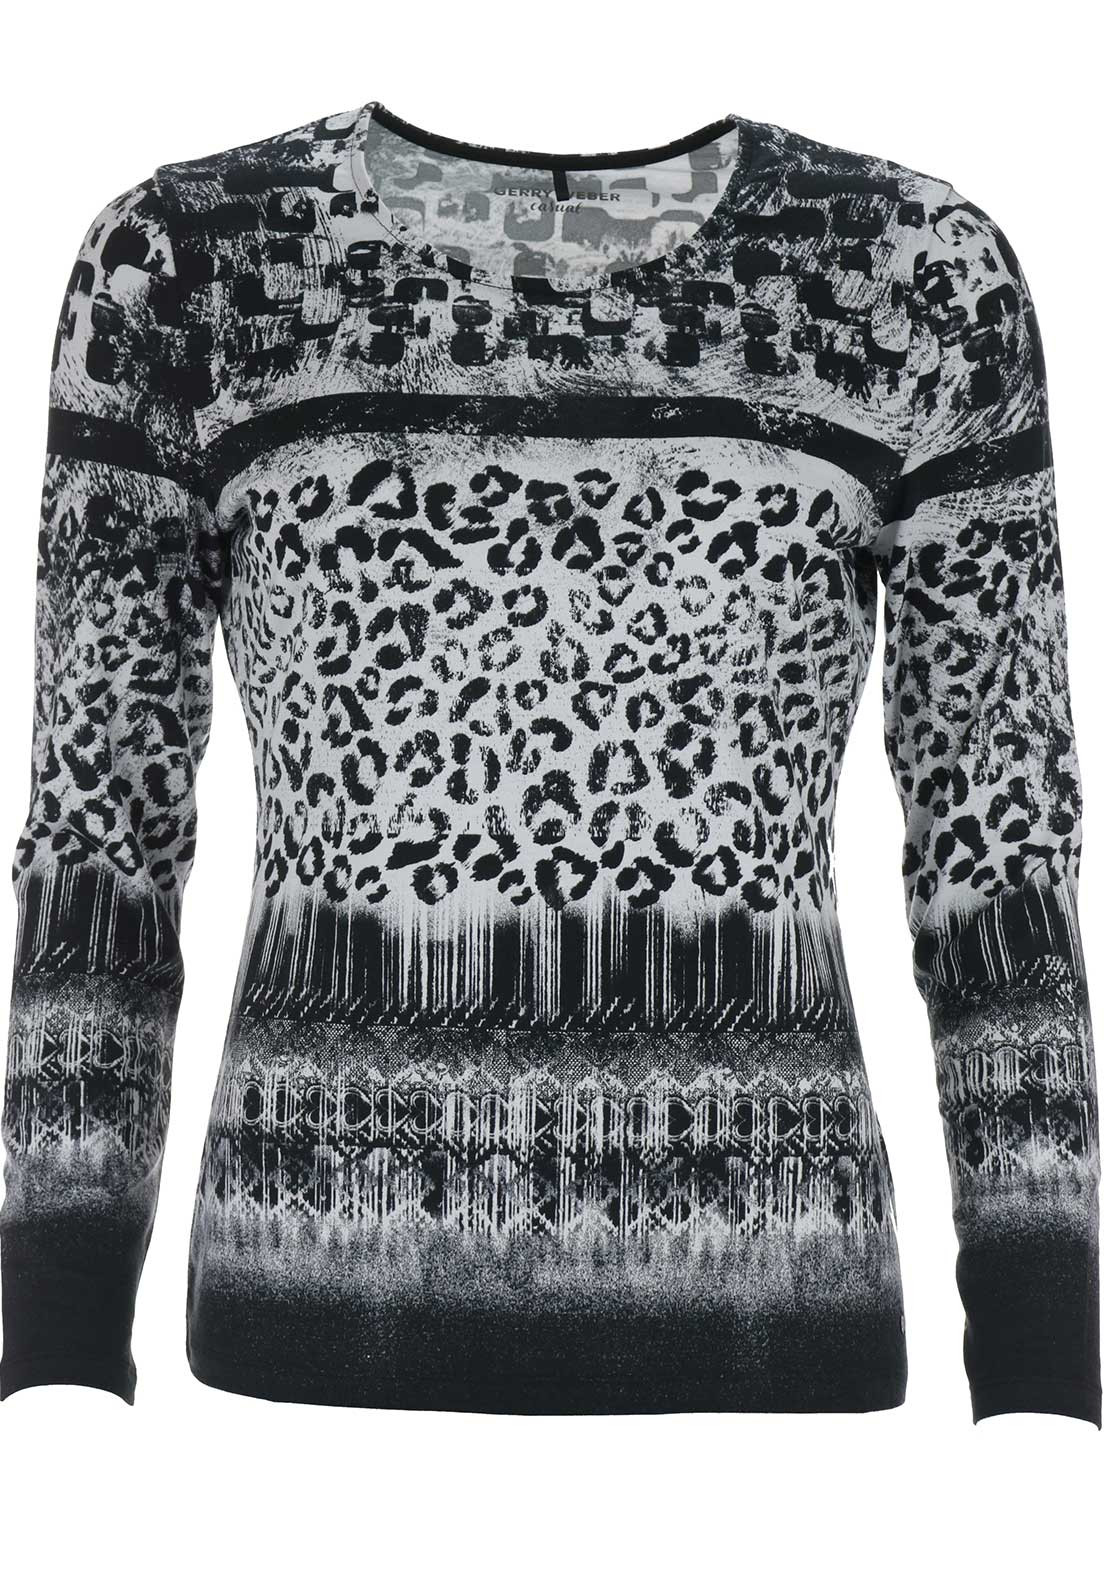 Gerry Weber Animal Print Top, Black and White